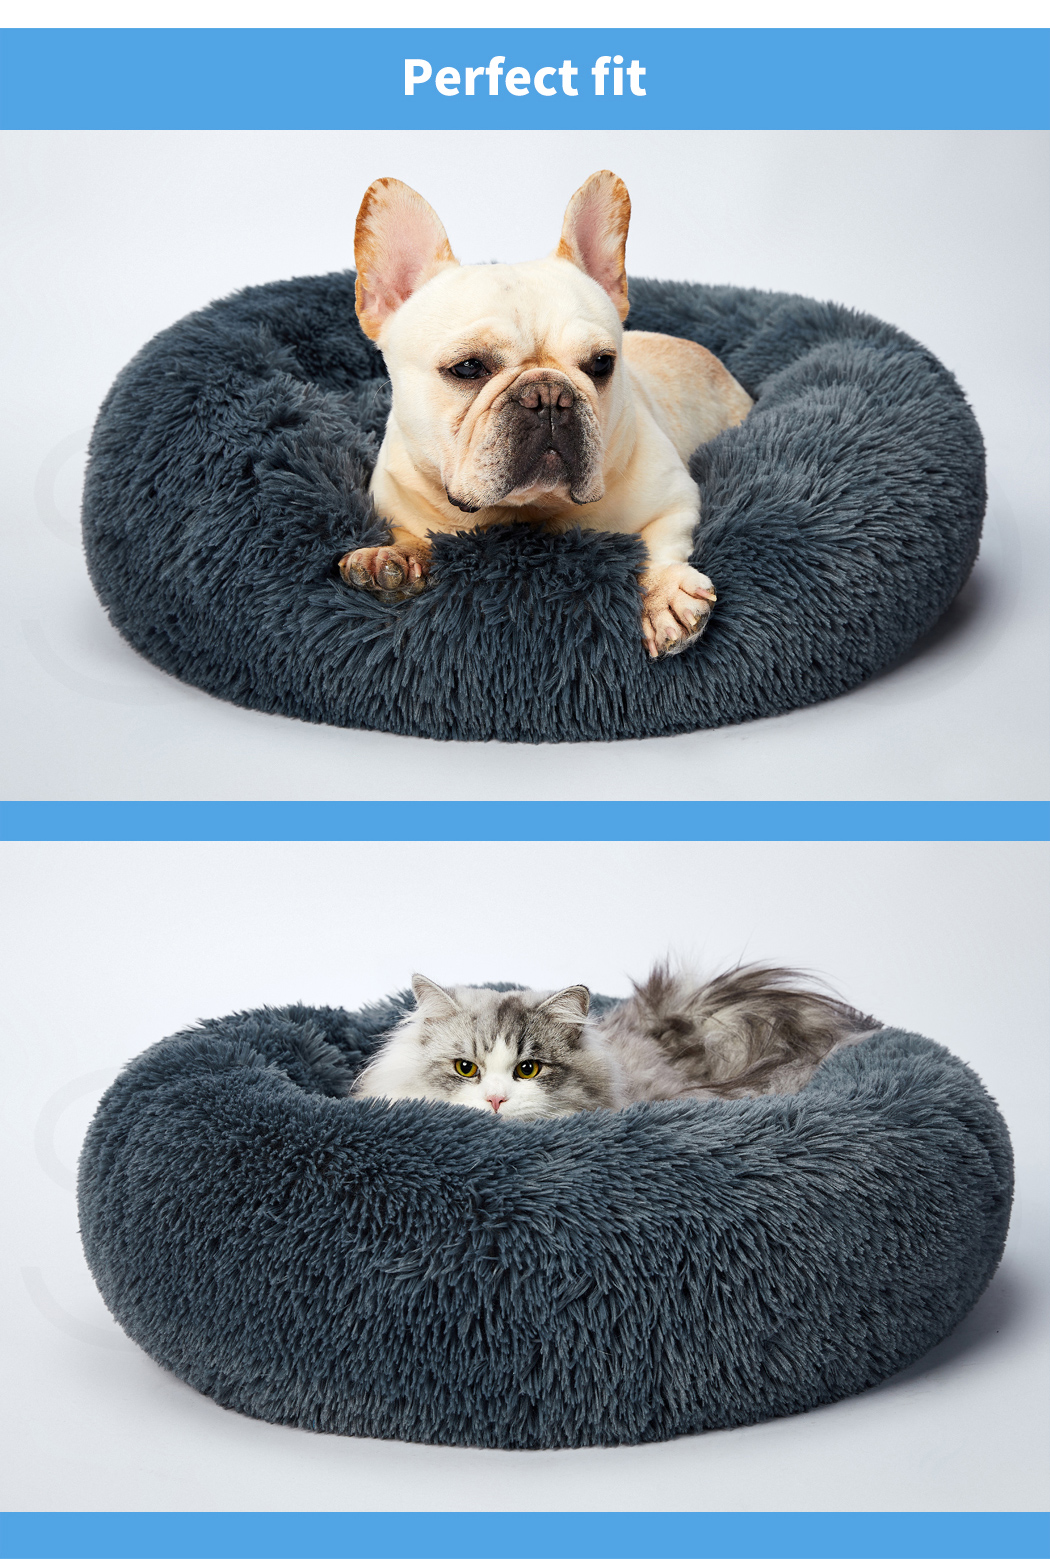 thumbnail 30 - PaWz Dog Calming Bed Cat Cave Pet Nest Soft Plush Warm Comfy Kennel Extra Large